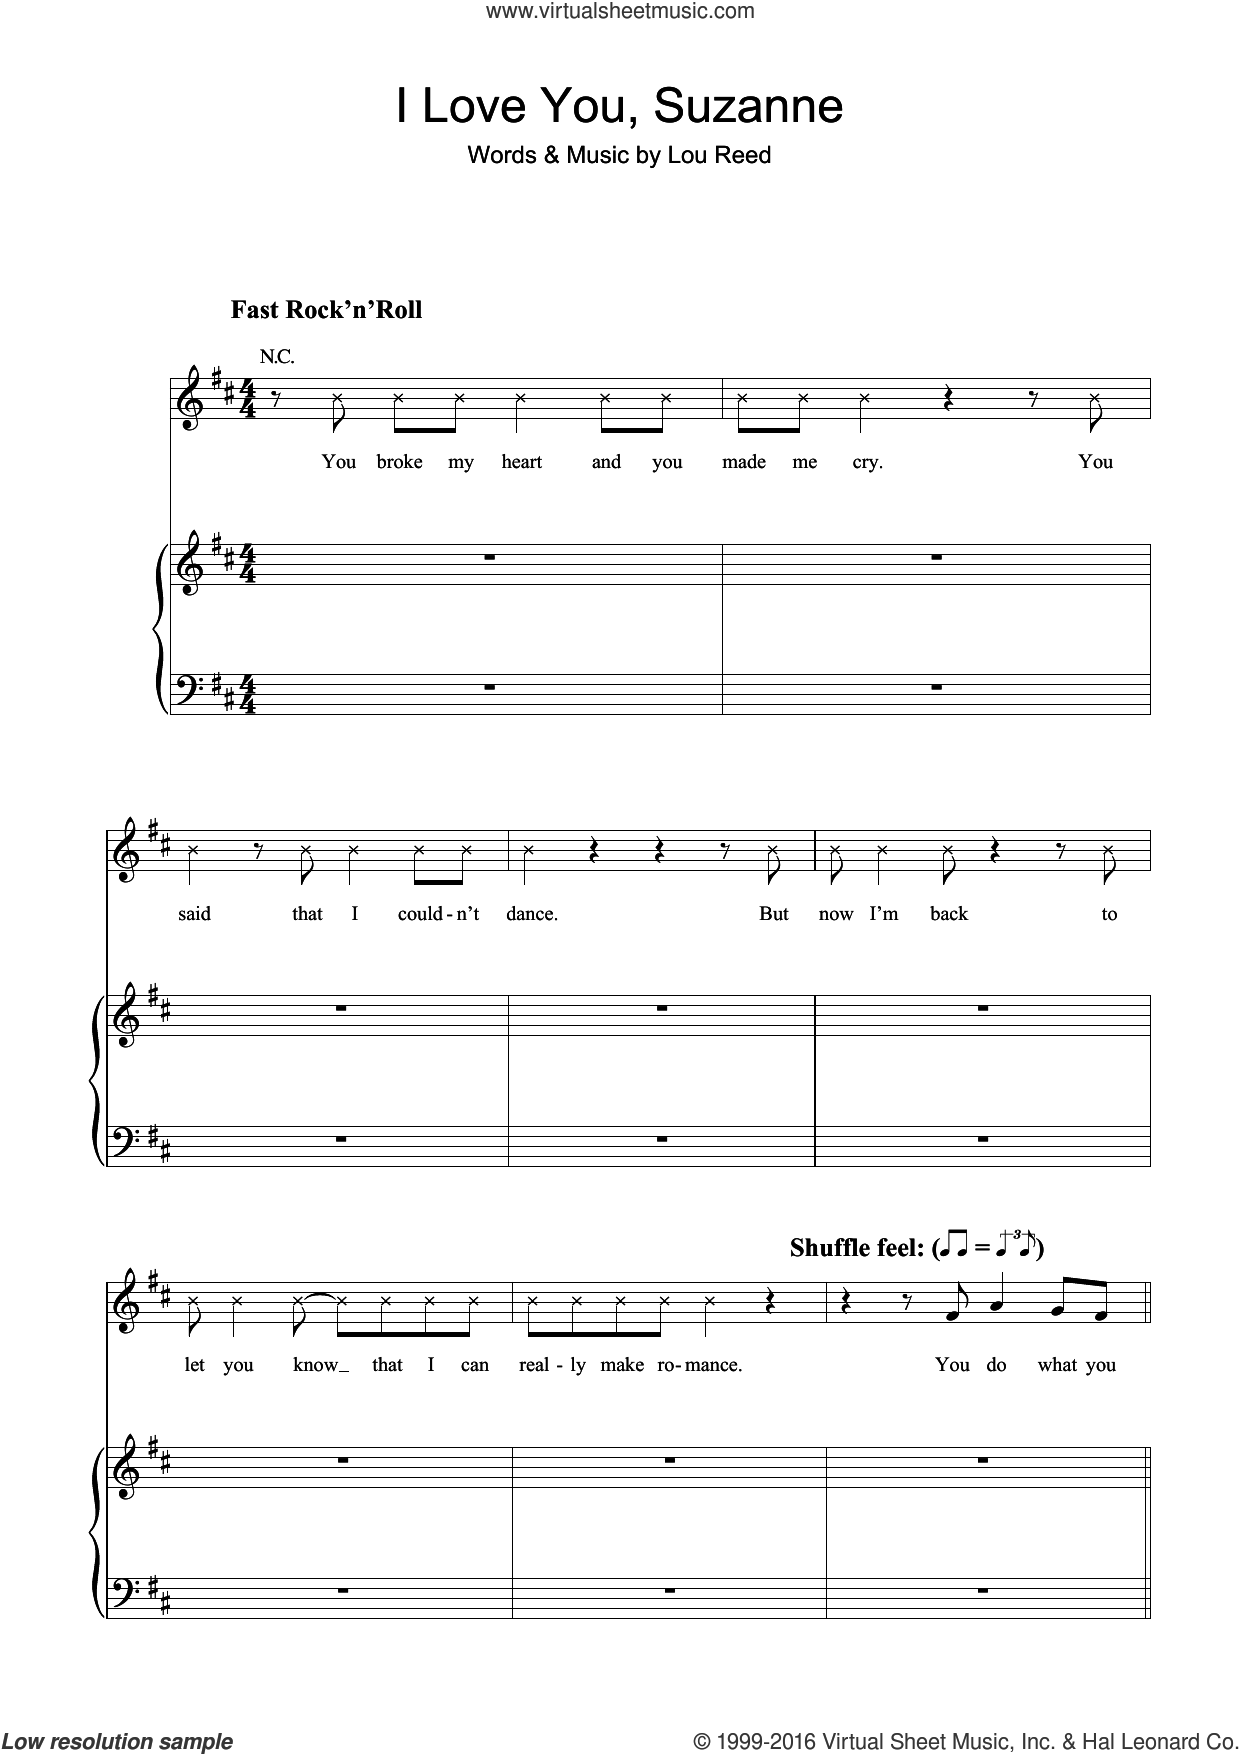 I Love You, Suzanne sheet music for violin solo by Lou Reed, intermediate skill level